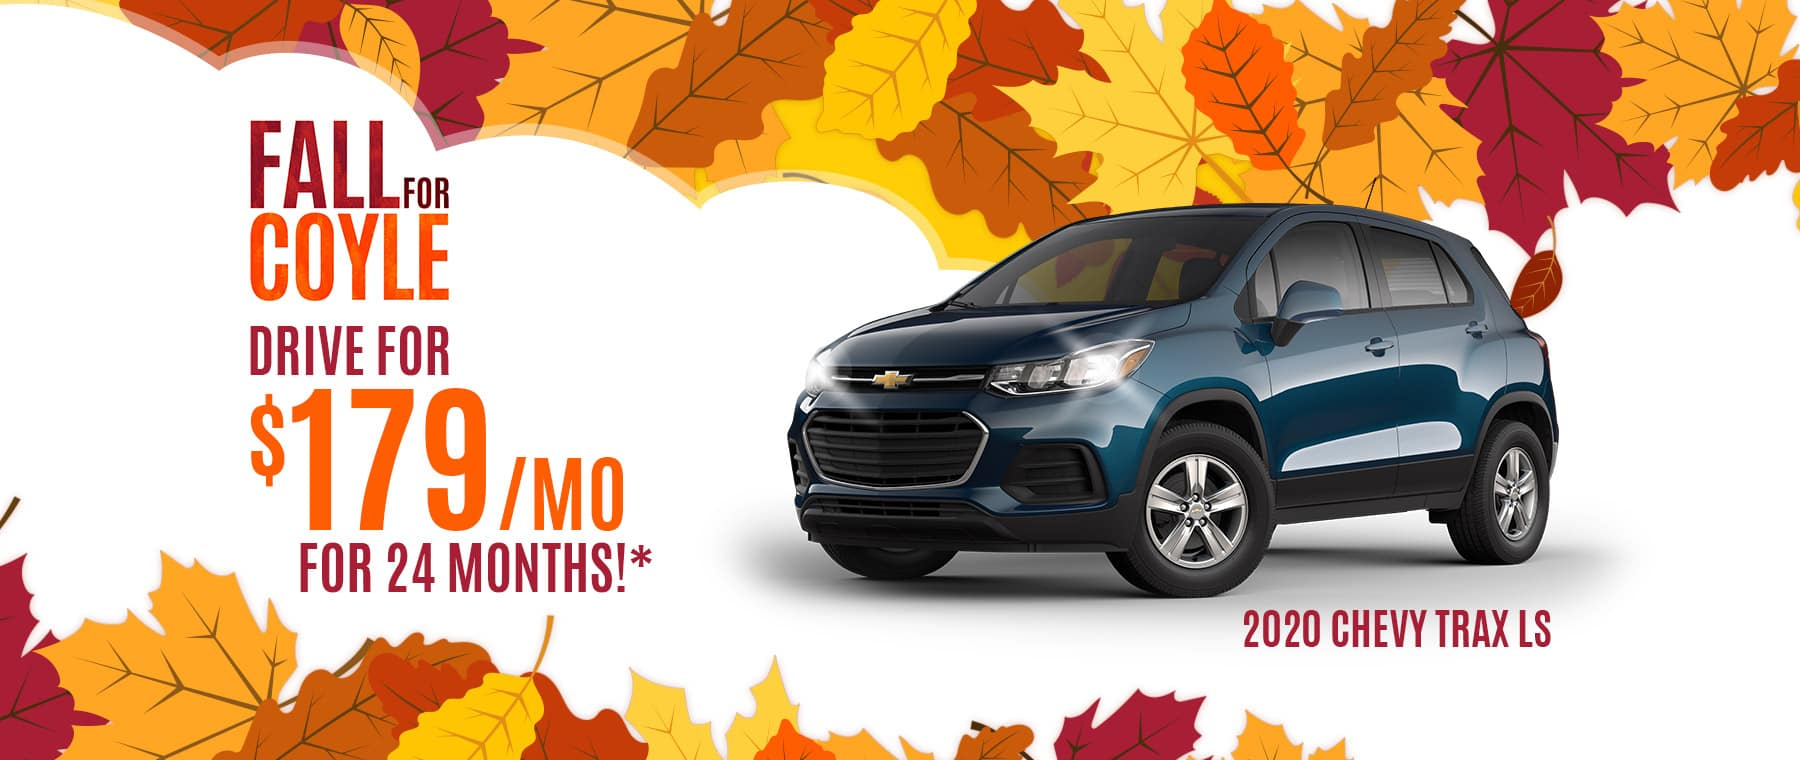 Lease Special on New Chevrolet Trax near New Albany, Indiana